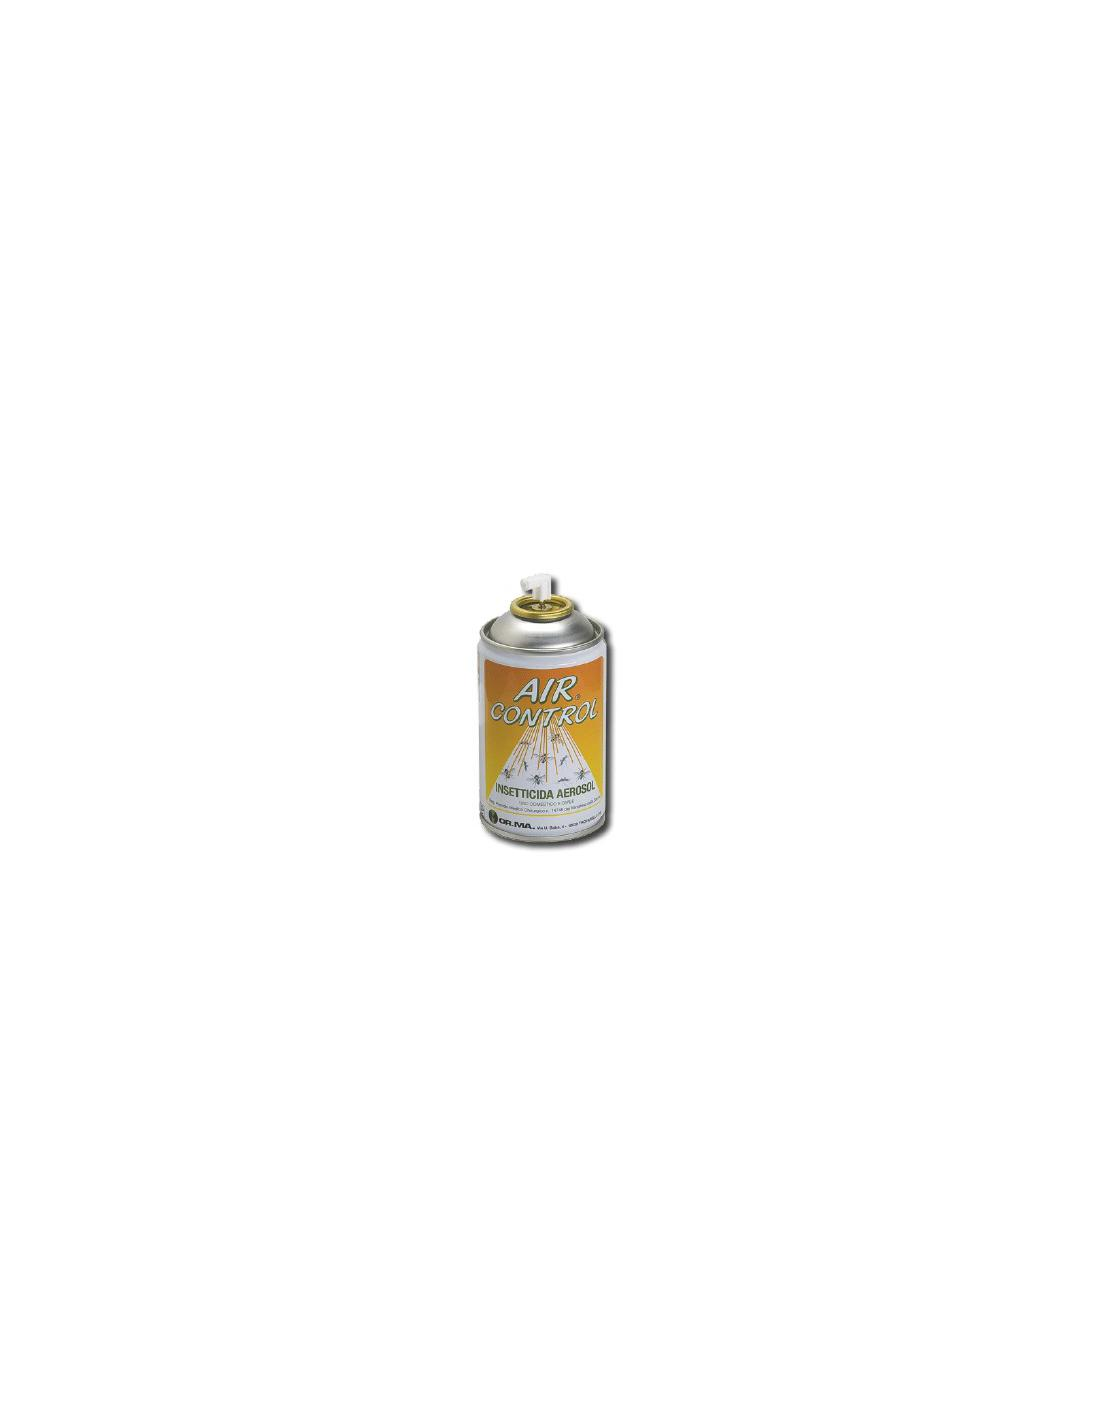 INSECTICIDE AIR CONTROL - 1